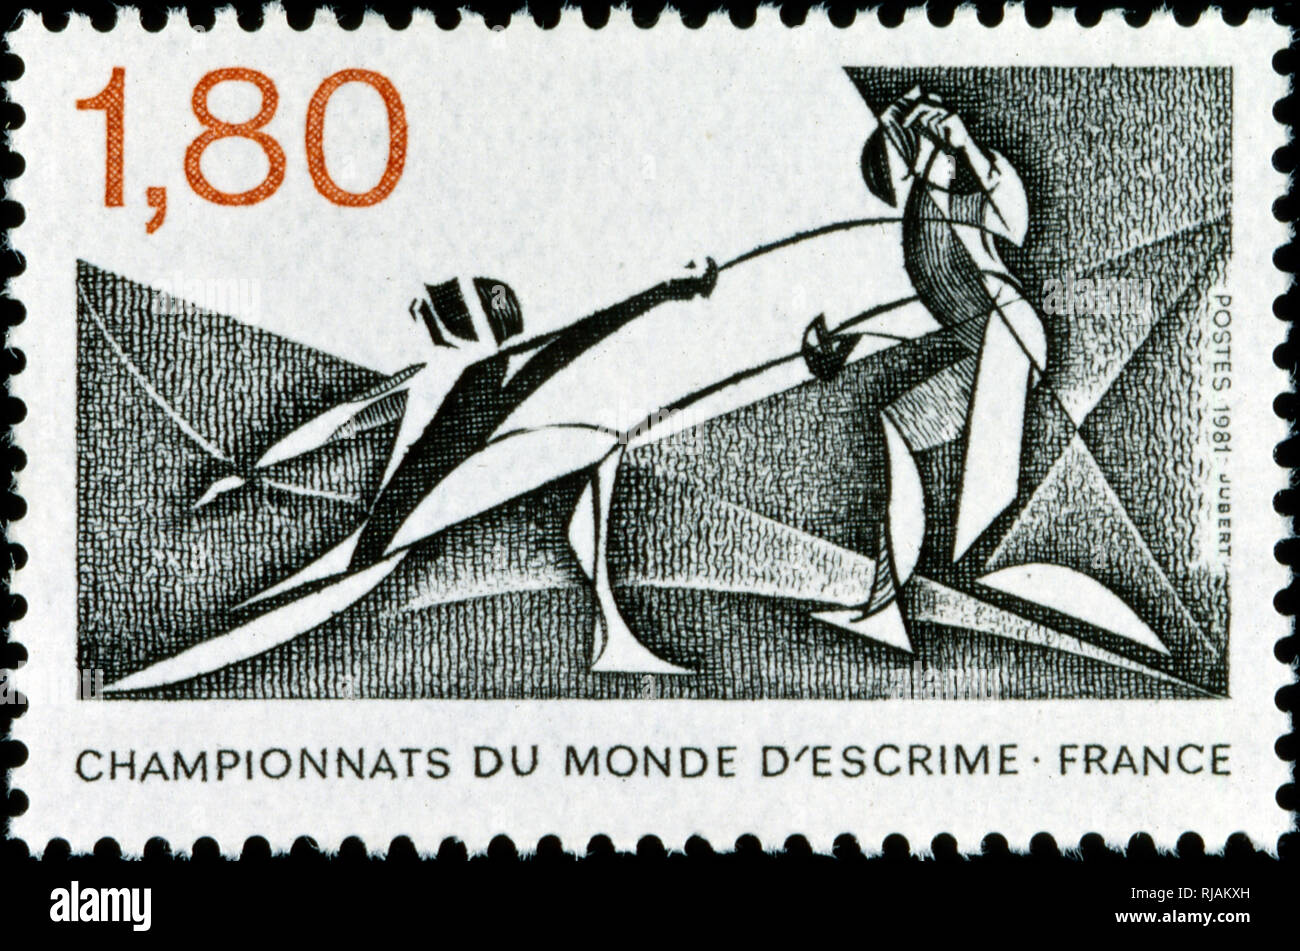 French postage stamp commemorating the world fencing championship 1982 - Stock Image